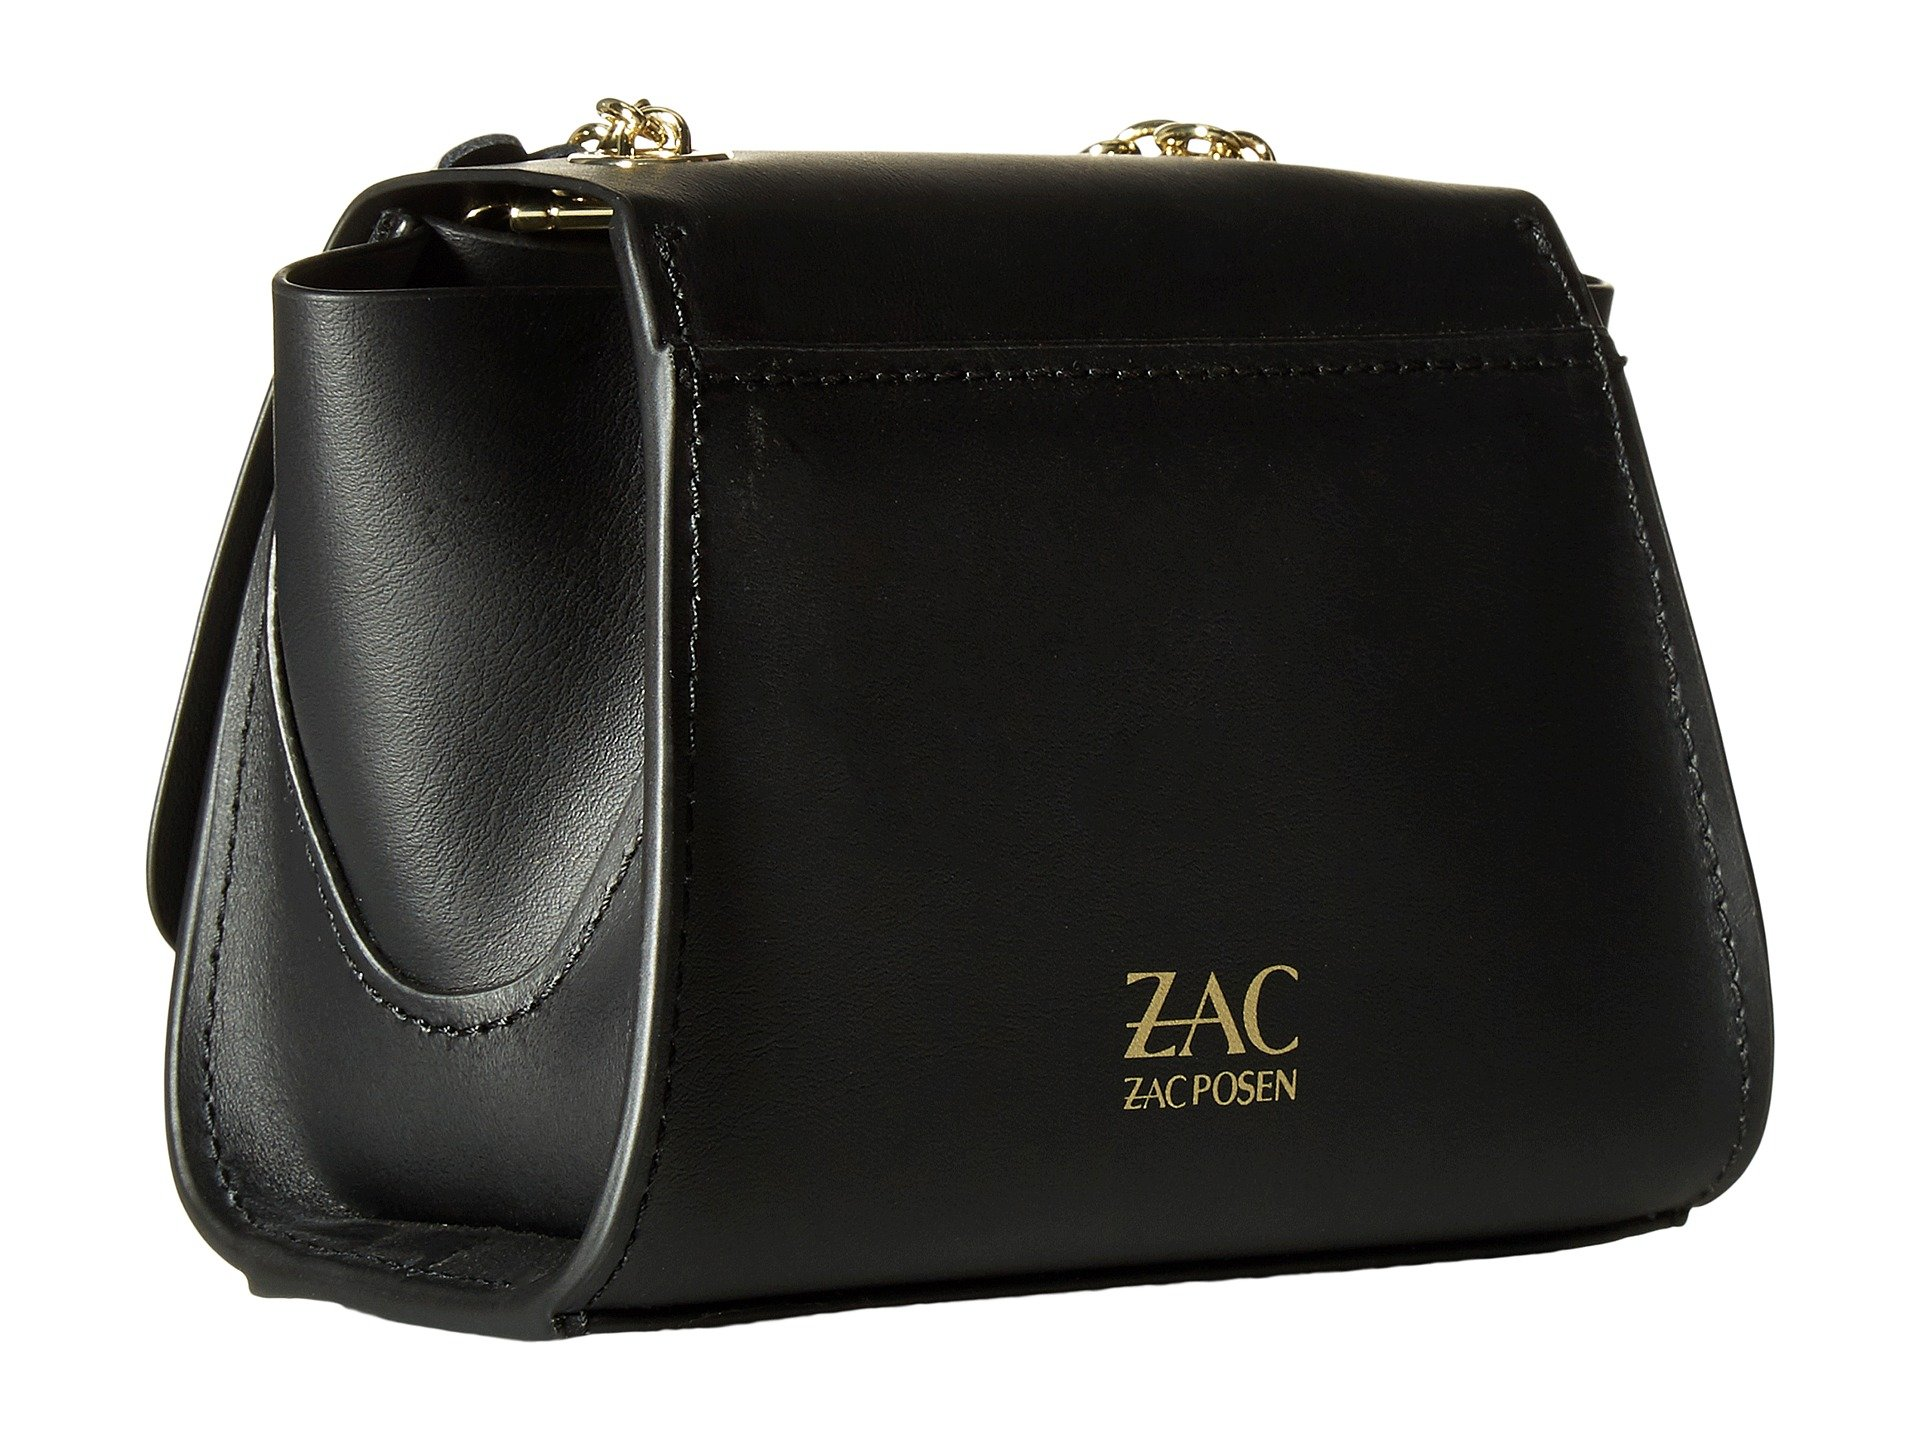 ZAC Zac Posen Eartha Iconic Floral Mini Chain Crossbody With Floral Applique At 6pm